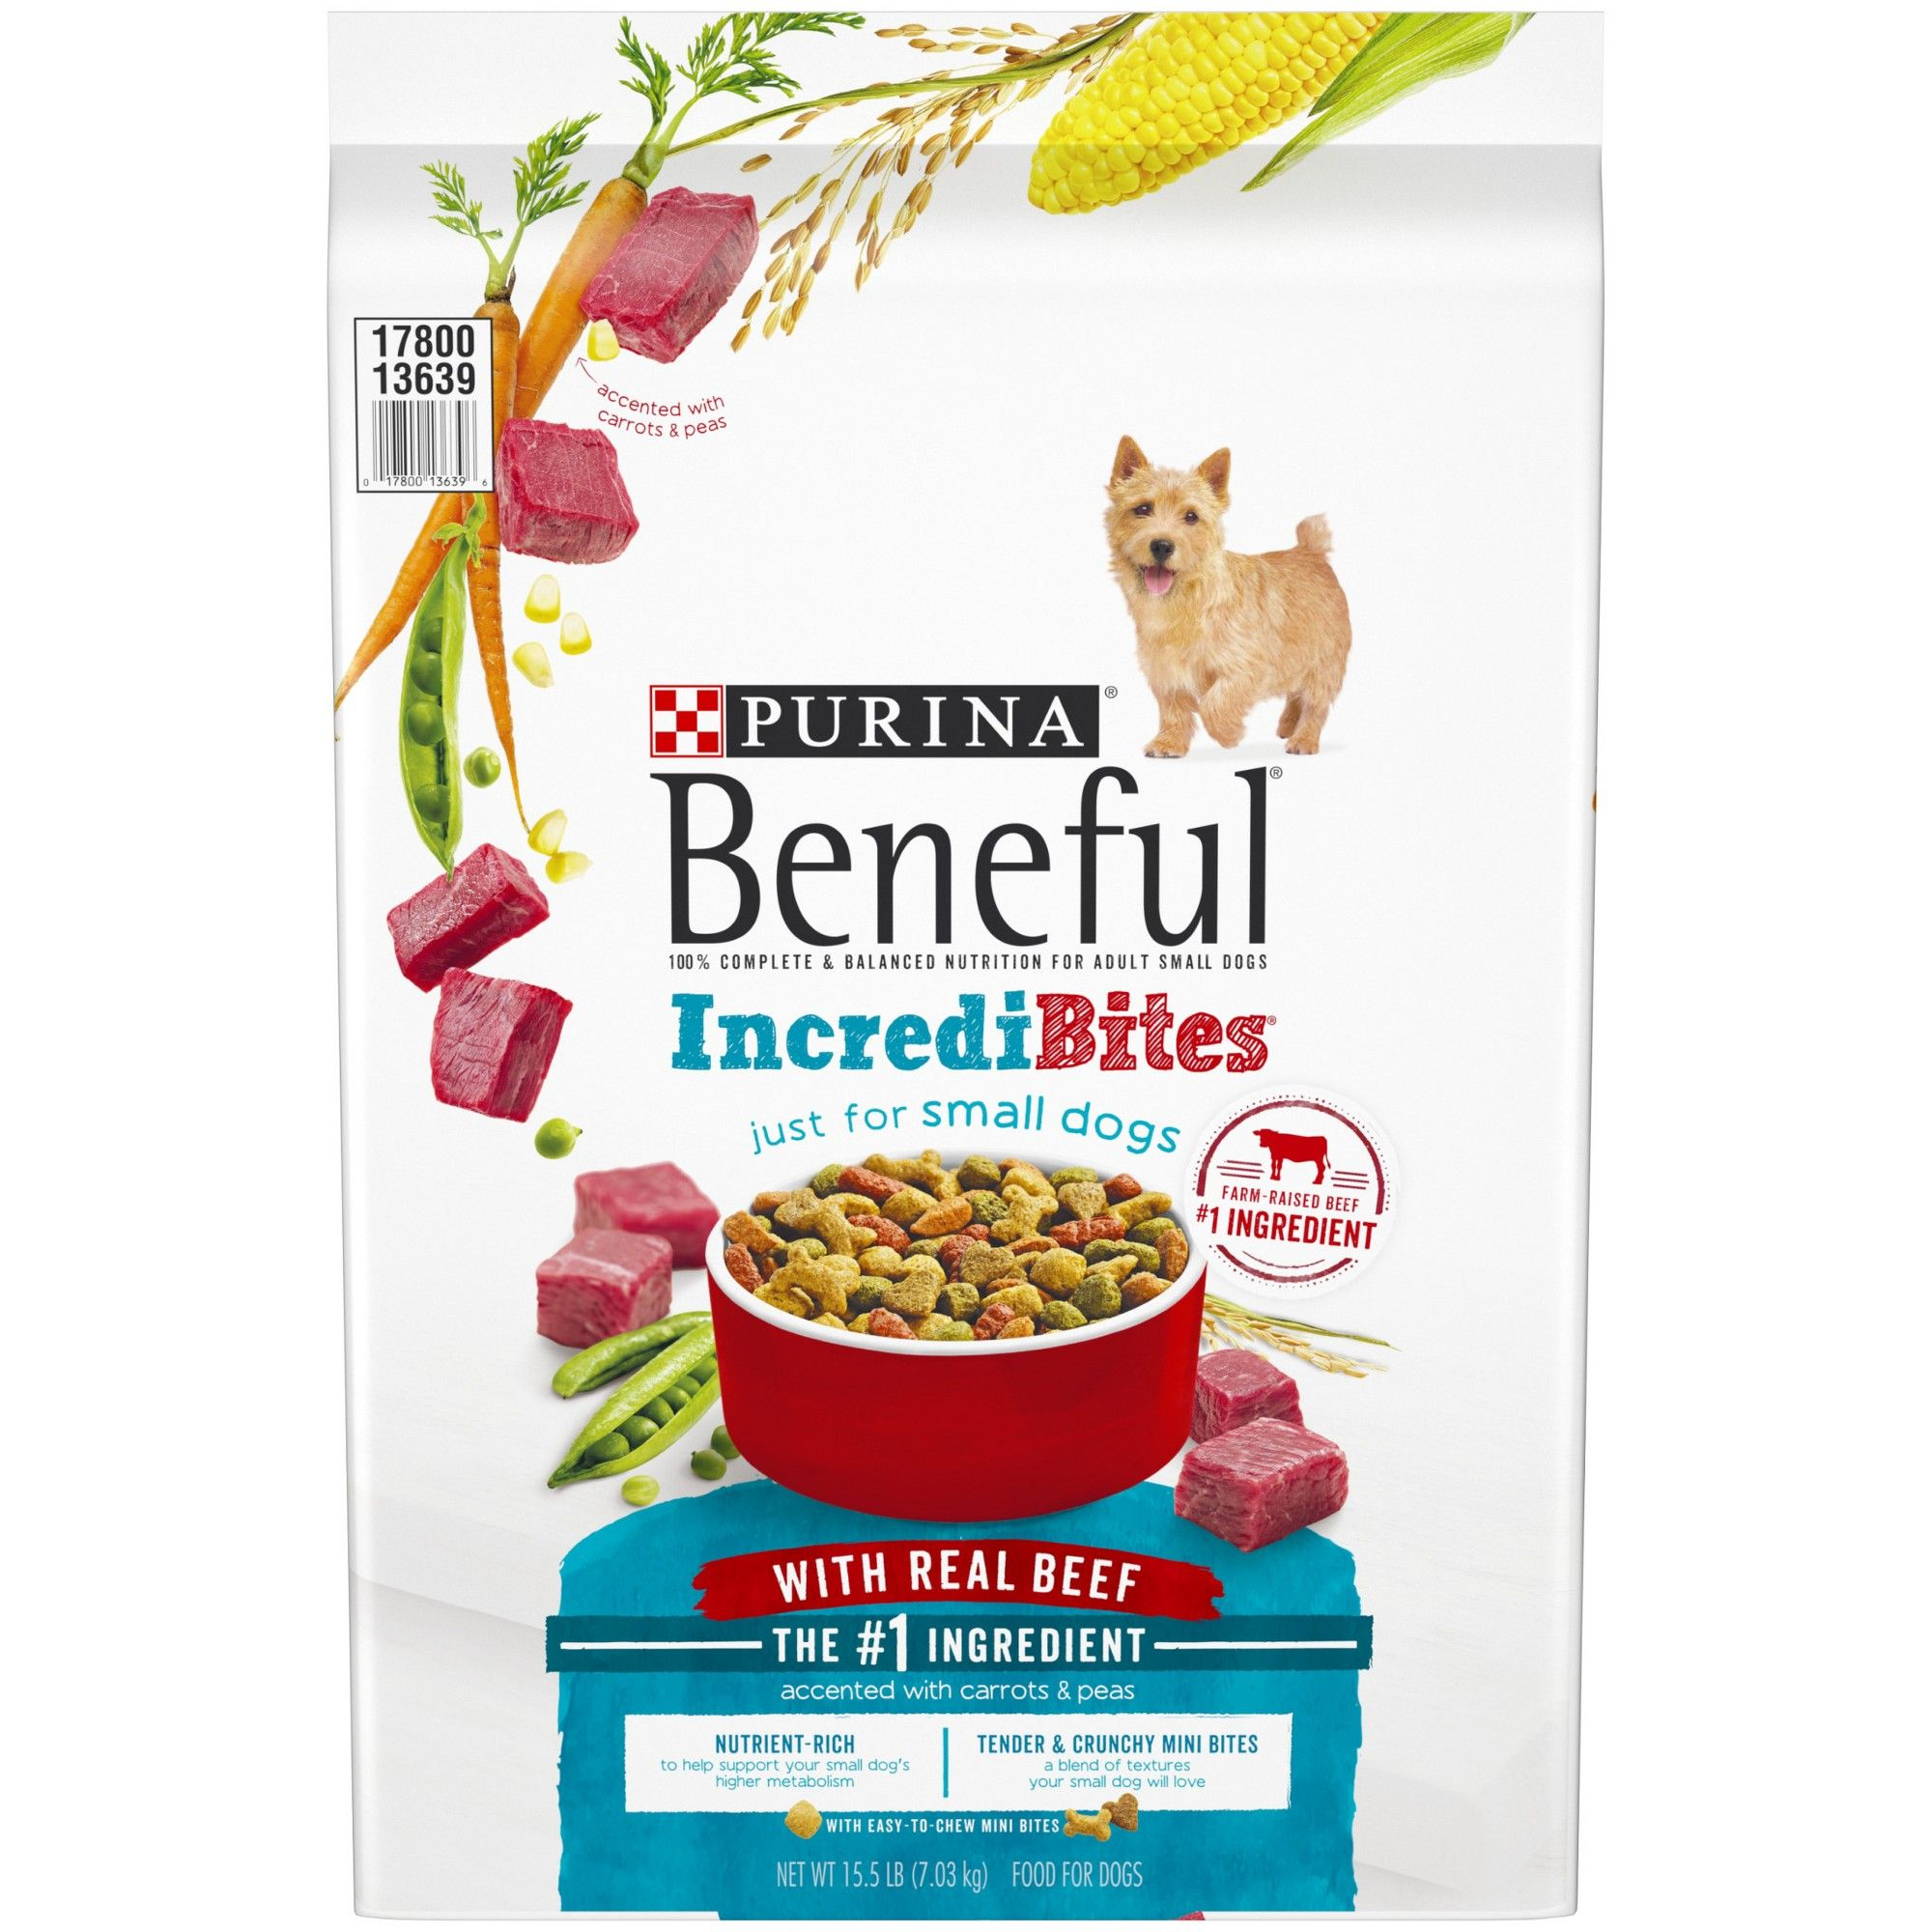 Purina Beneful Incredibites With Real Beef Dry Dog Food 15 5lbs